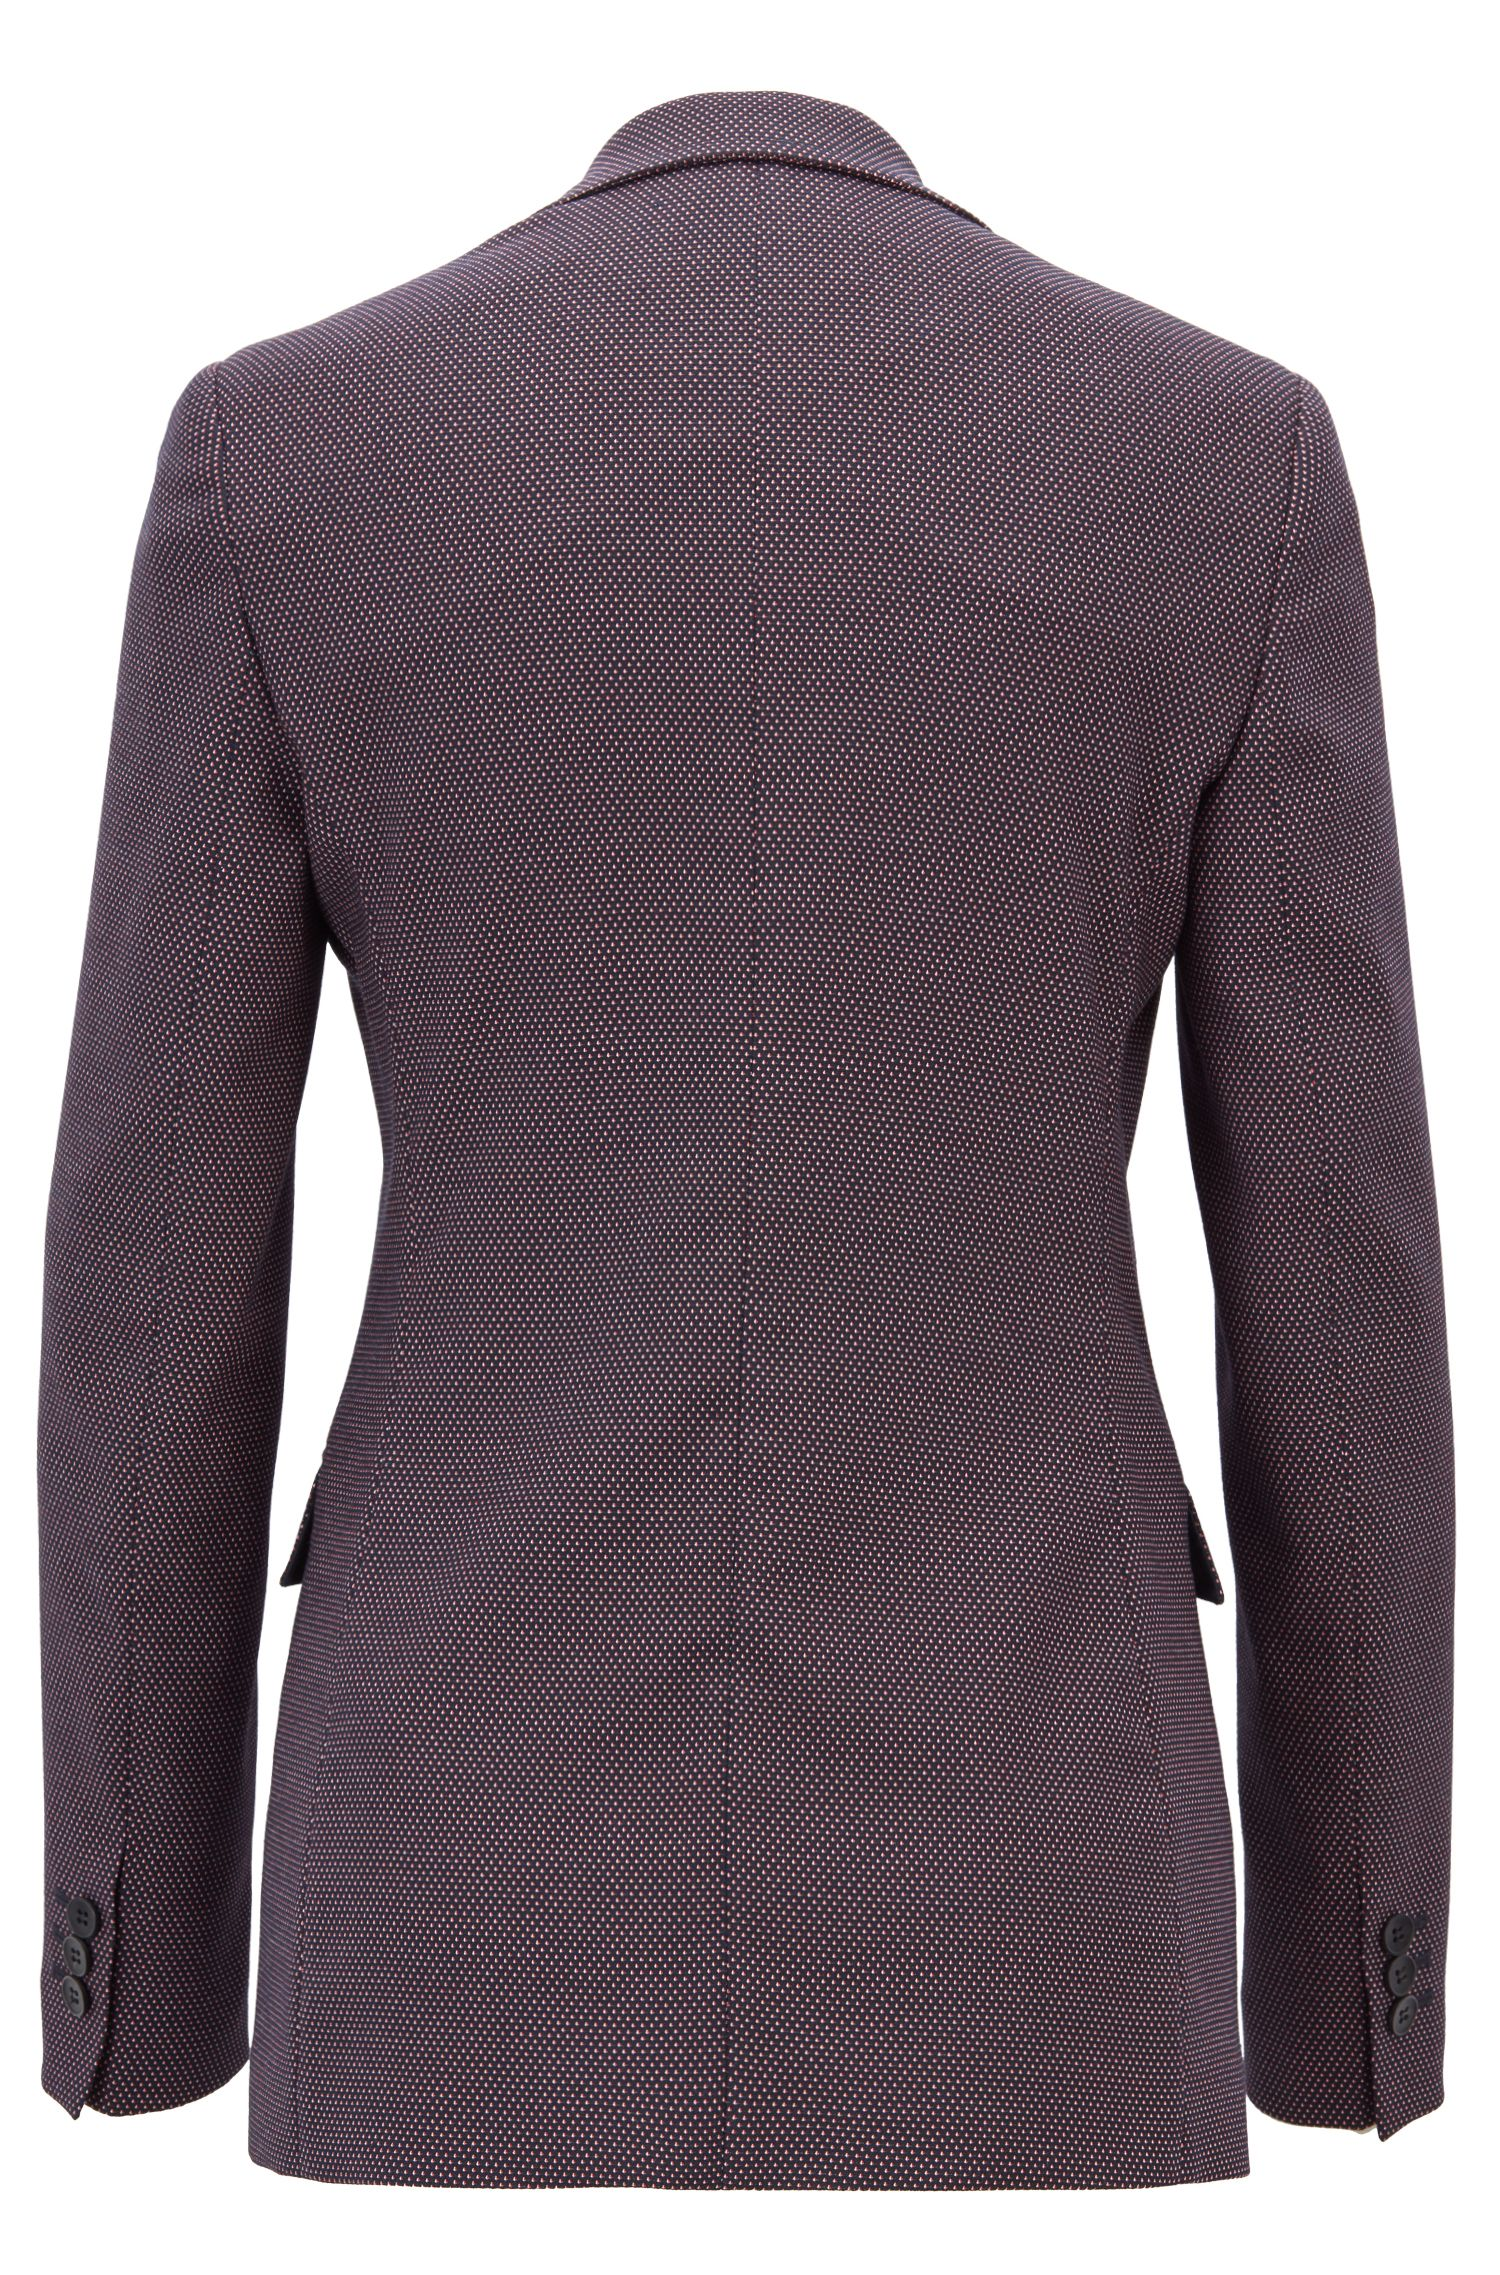 Long-length blazer in micro-dot stretch fabric, Patterned